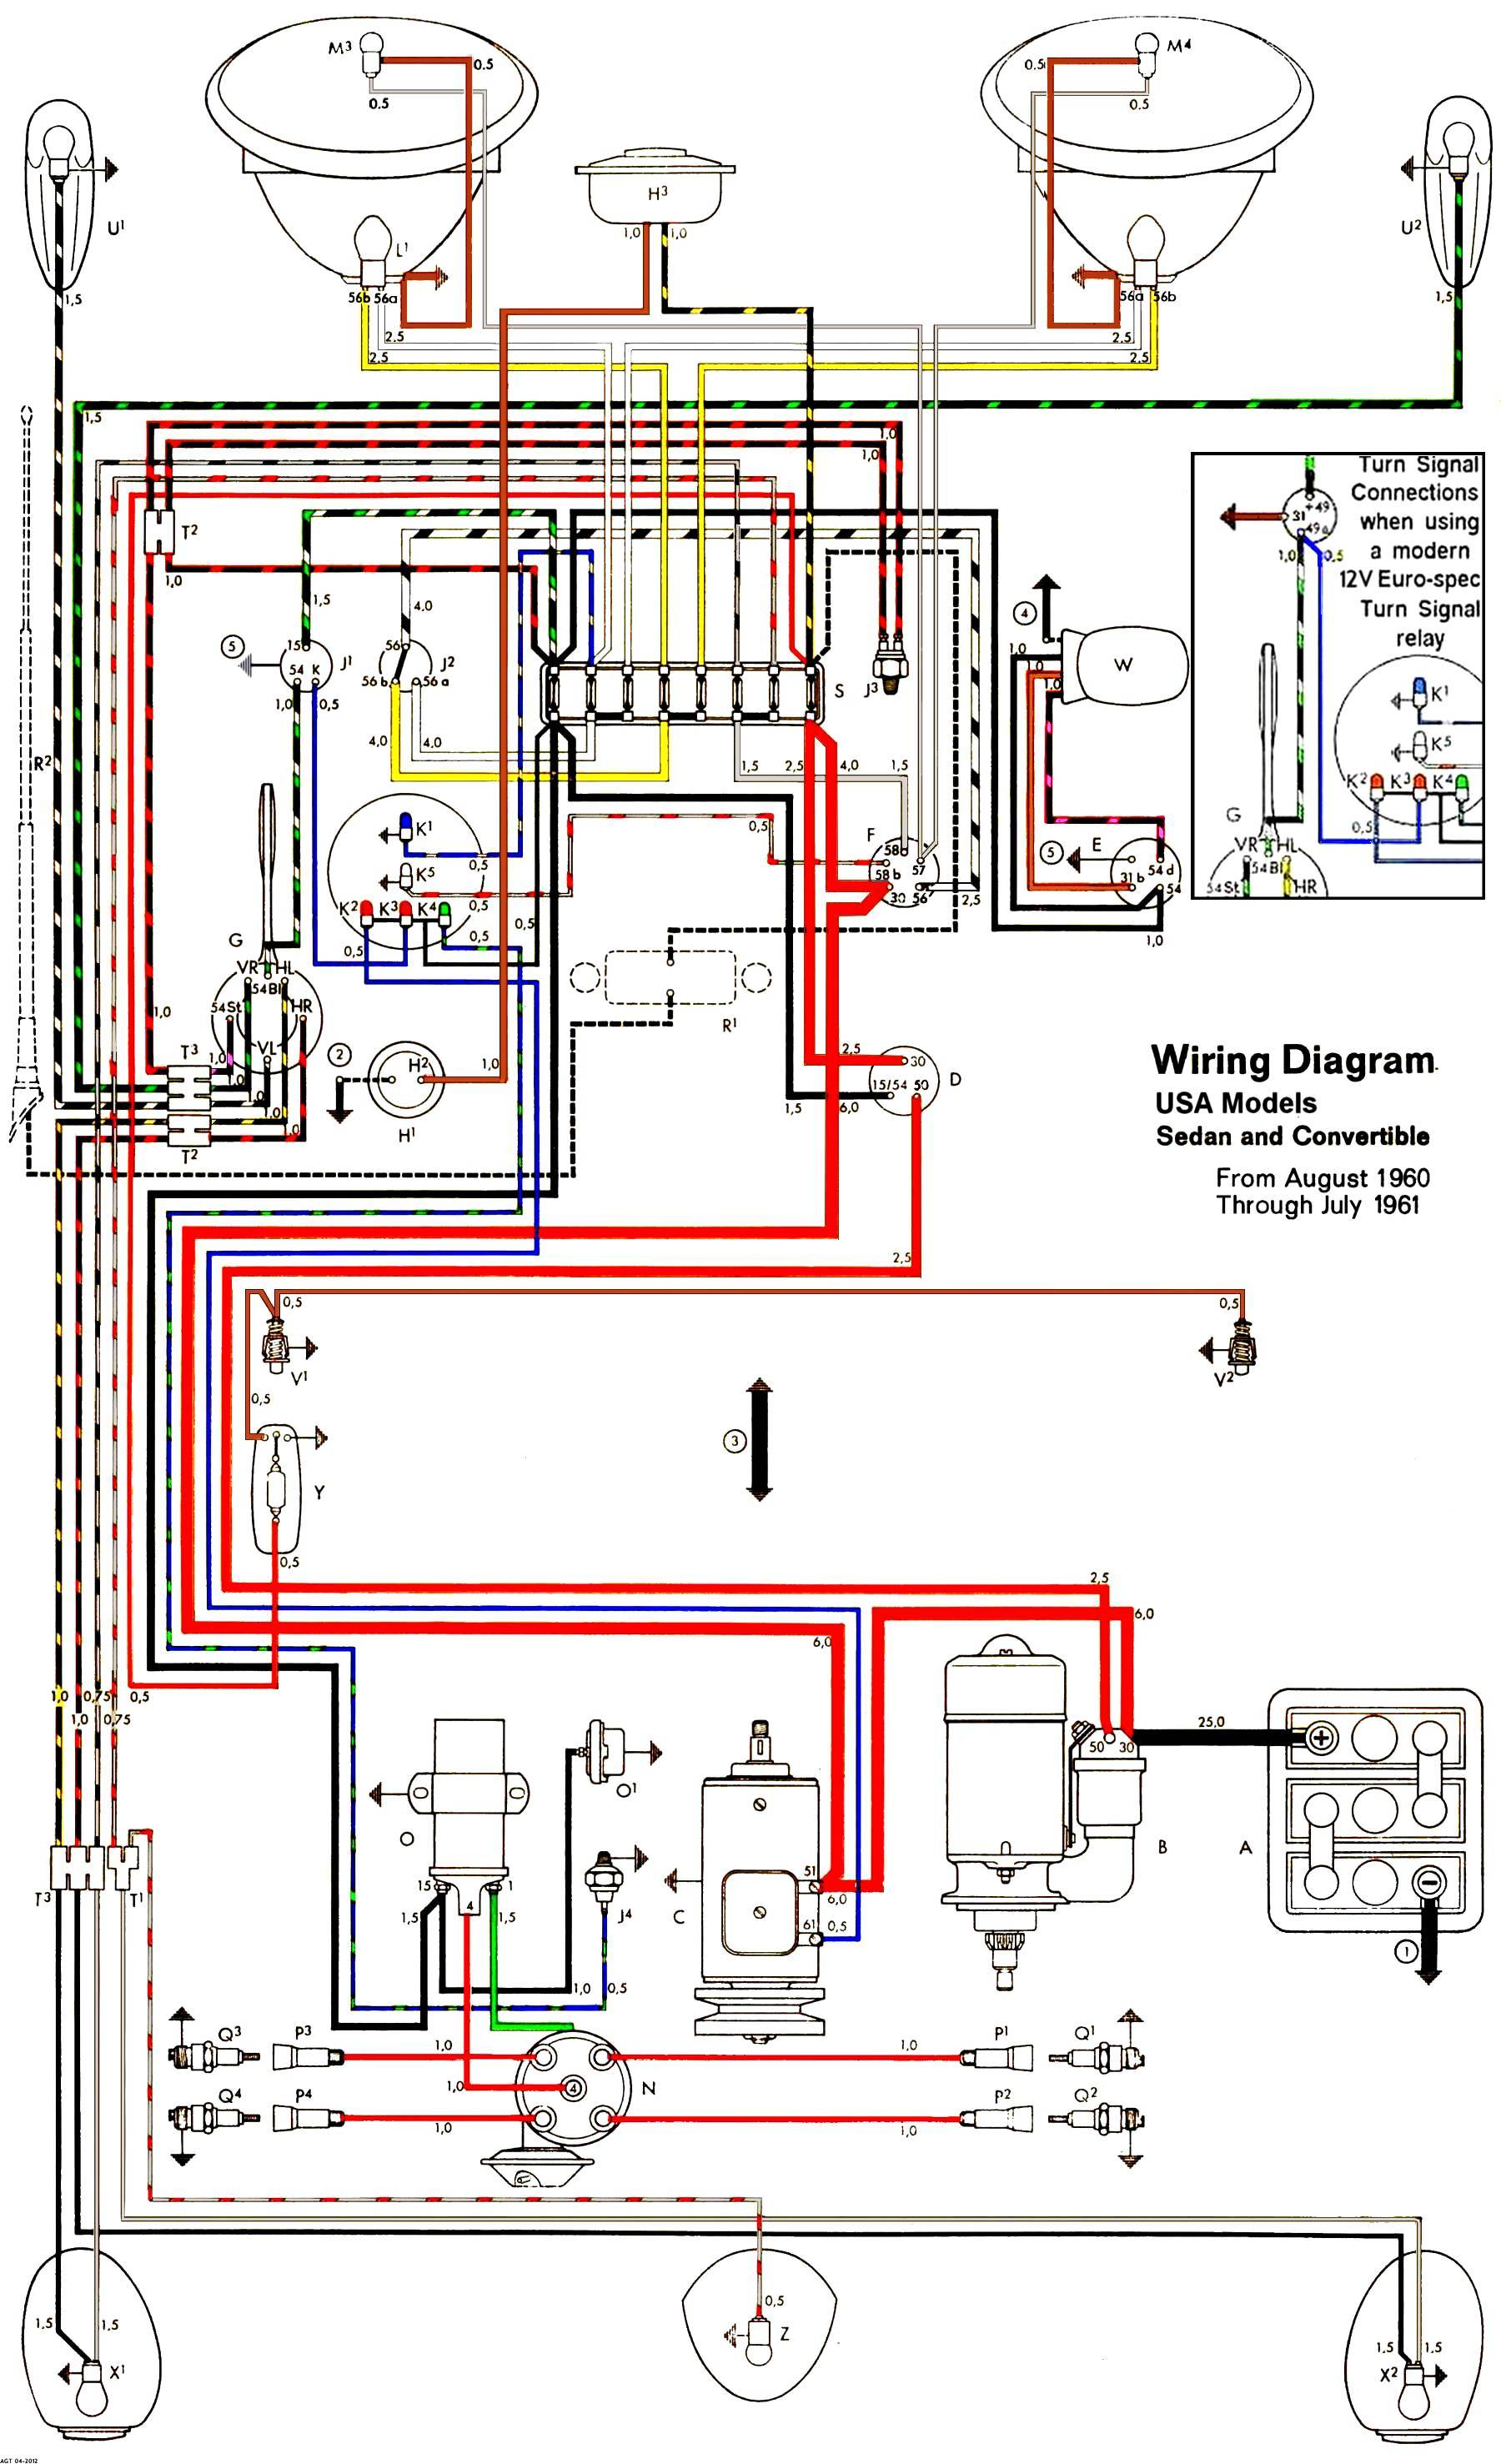 TheSamba.com :: Type 1 Wiring Diagrams on chevy cooling system, chevy truck diagrams, 1999 chevrolet truck diagrams, chevy oil pressure sending unit, gmc fuse box diagrams, chevy truck wiring, chevy accessories, chevy heater core replacement, chevy brake diagrams, chevy radio wiring, chevy wiring harness, chevy starter diagrams, chevy starting system, chevy alternator wiring info, chevy gas line diagrams, chevy maintenance schedule, chevy alternator diagrams, chevy headlight switch wiring, chevy electrical diagrams, chevy speaker wiring,